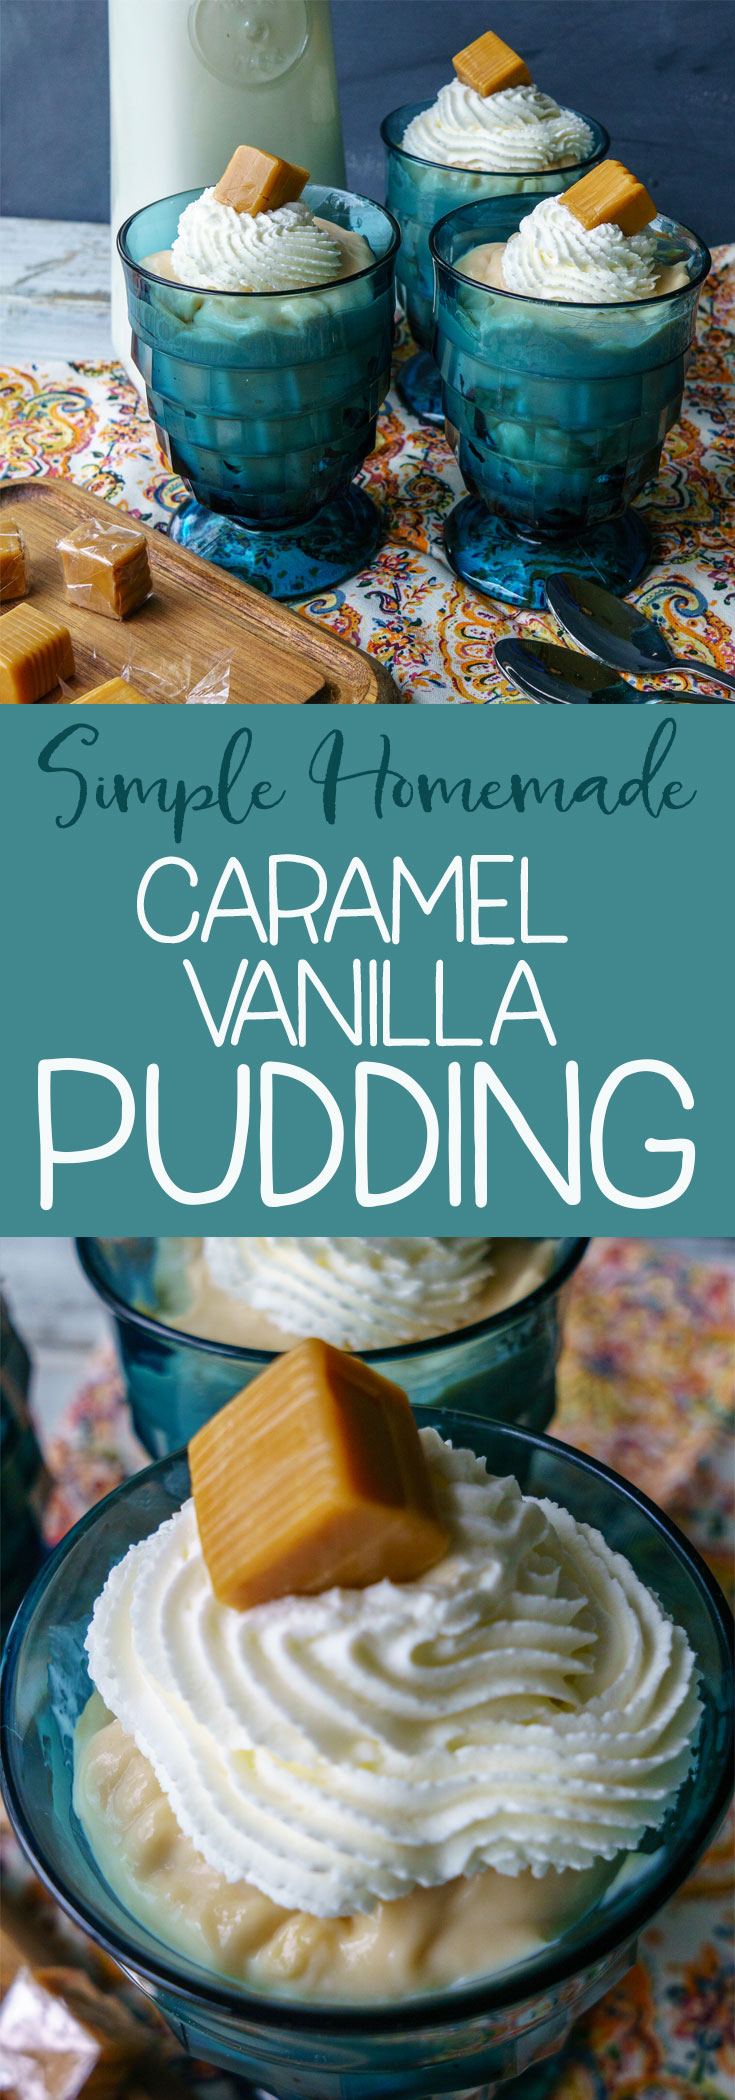 Forget the box! Make yours from scratch just as easily! You'll flip for this easy to make caramel vanilla pudding cooked right on your stovetop!  #KnowYourMilk  #pudding #homemade desserts via @mrsmajorhoff